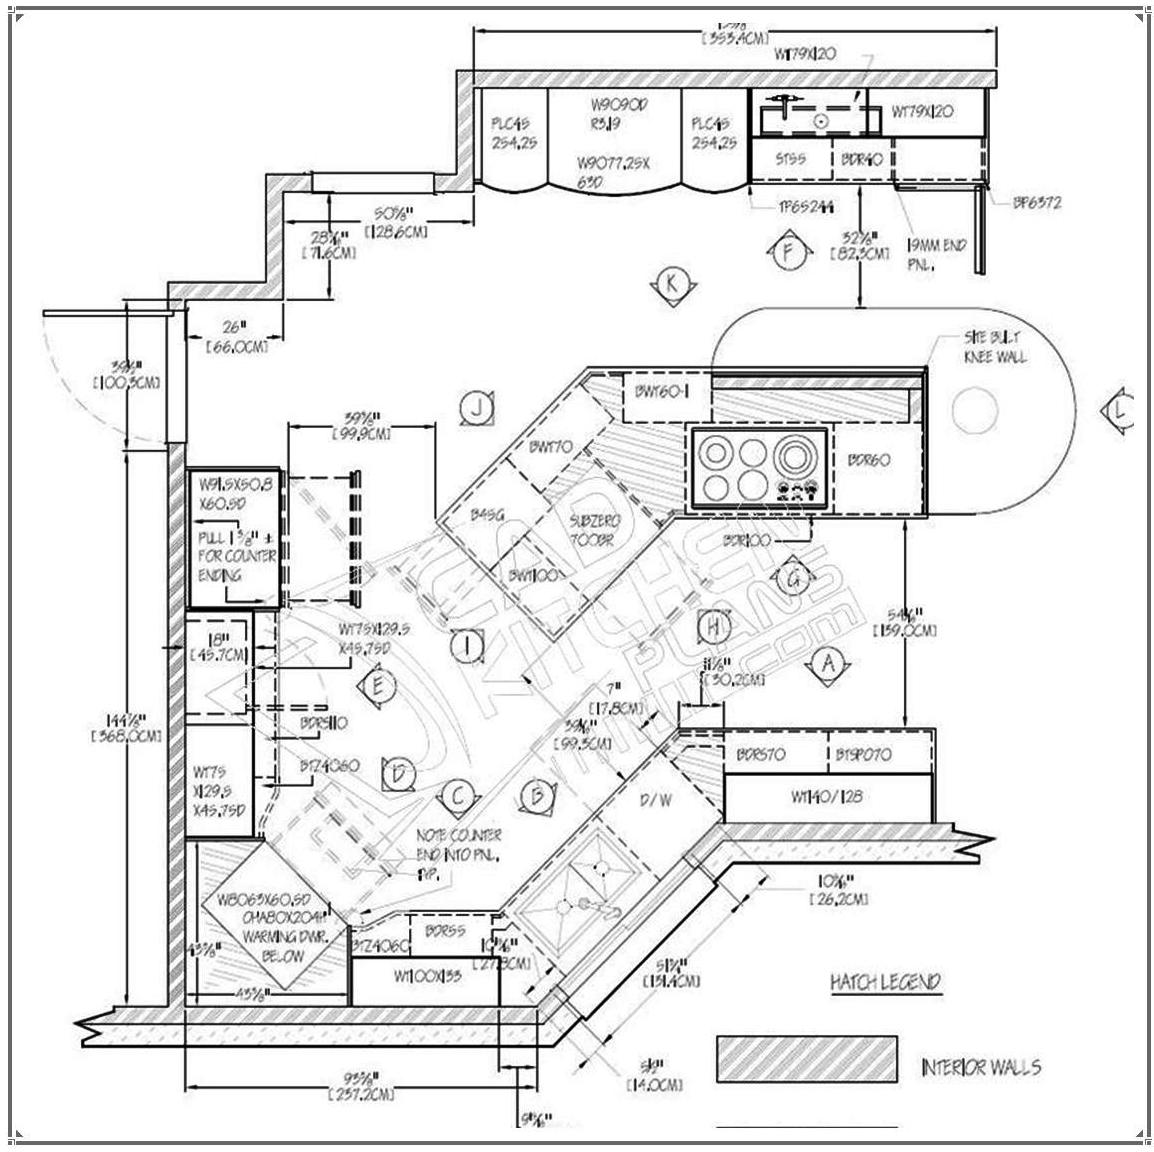 House Architectural Drawing At GetDrawings.com